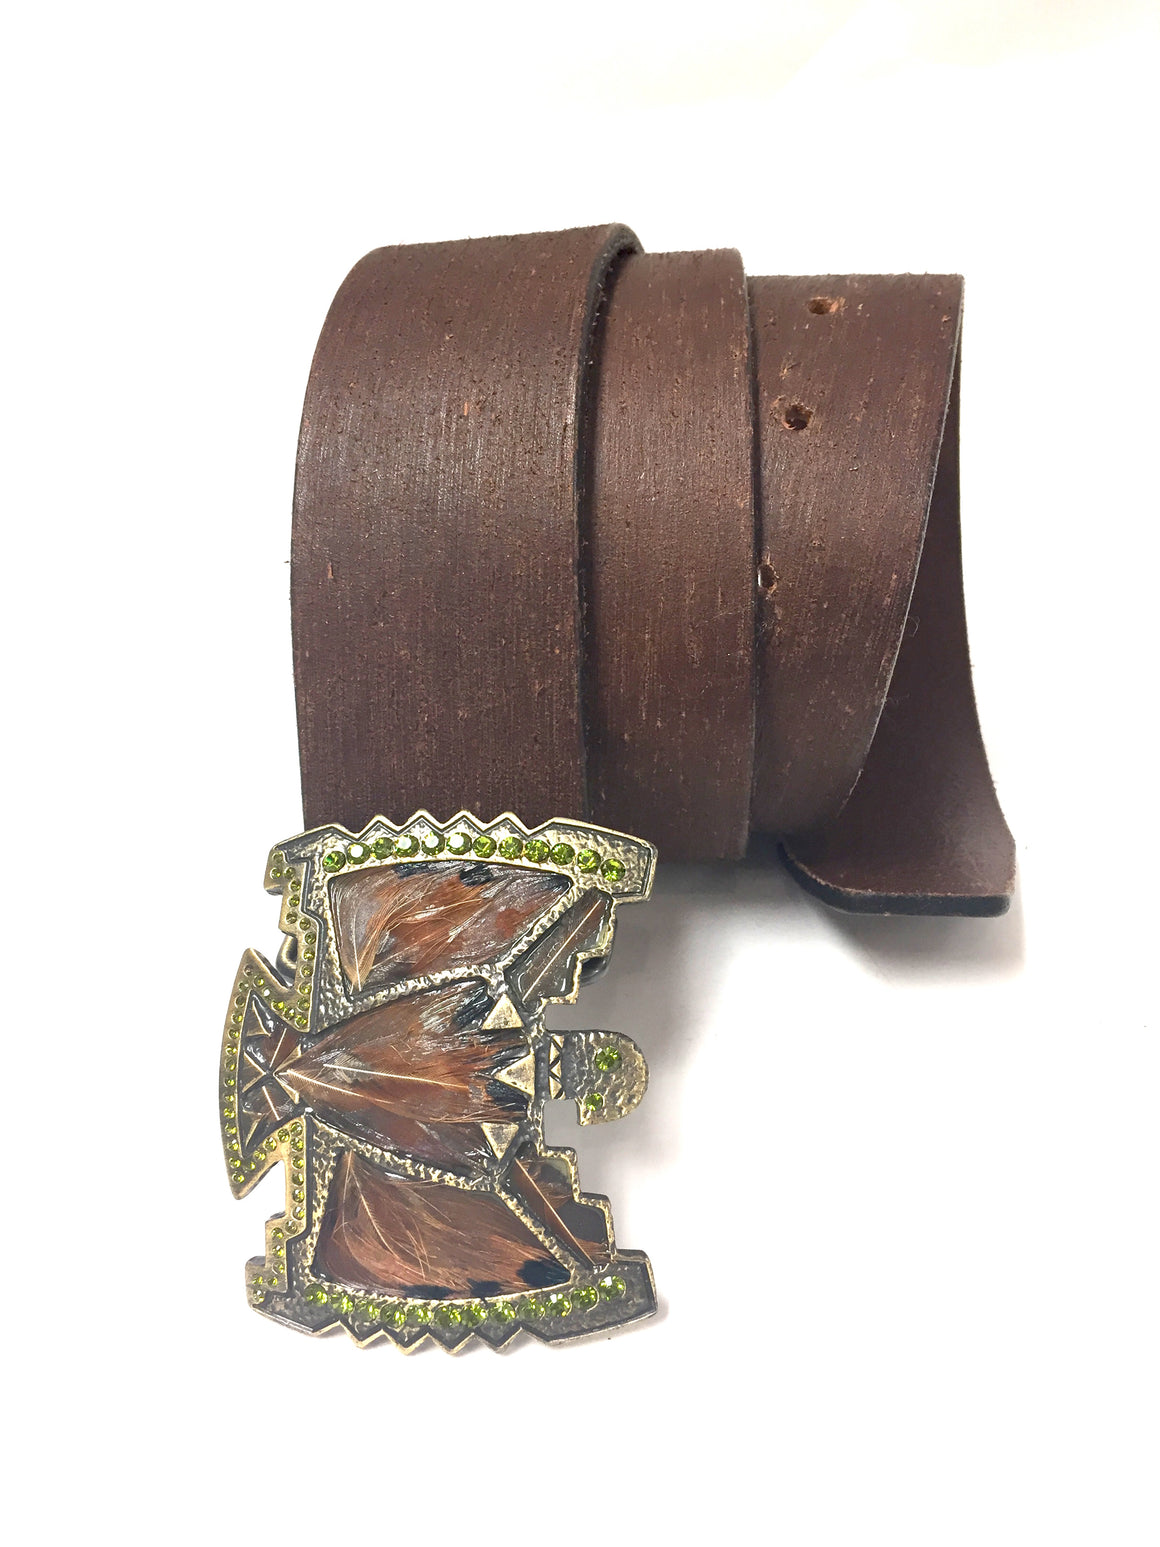 JUST CAVALLI Brown Distressed Leather Bronze Jeweled Buckle Waist Belt Size: 90 / L